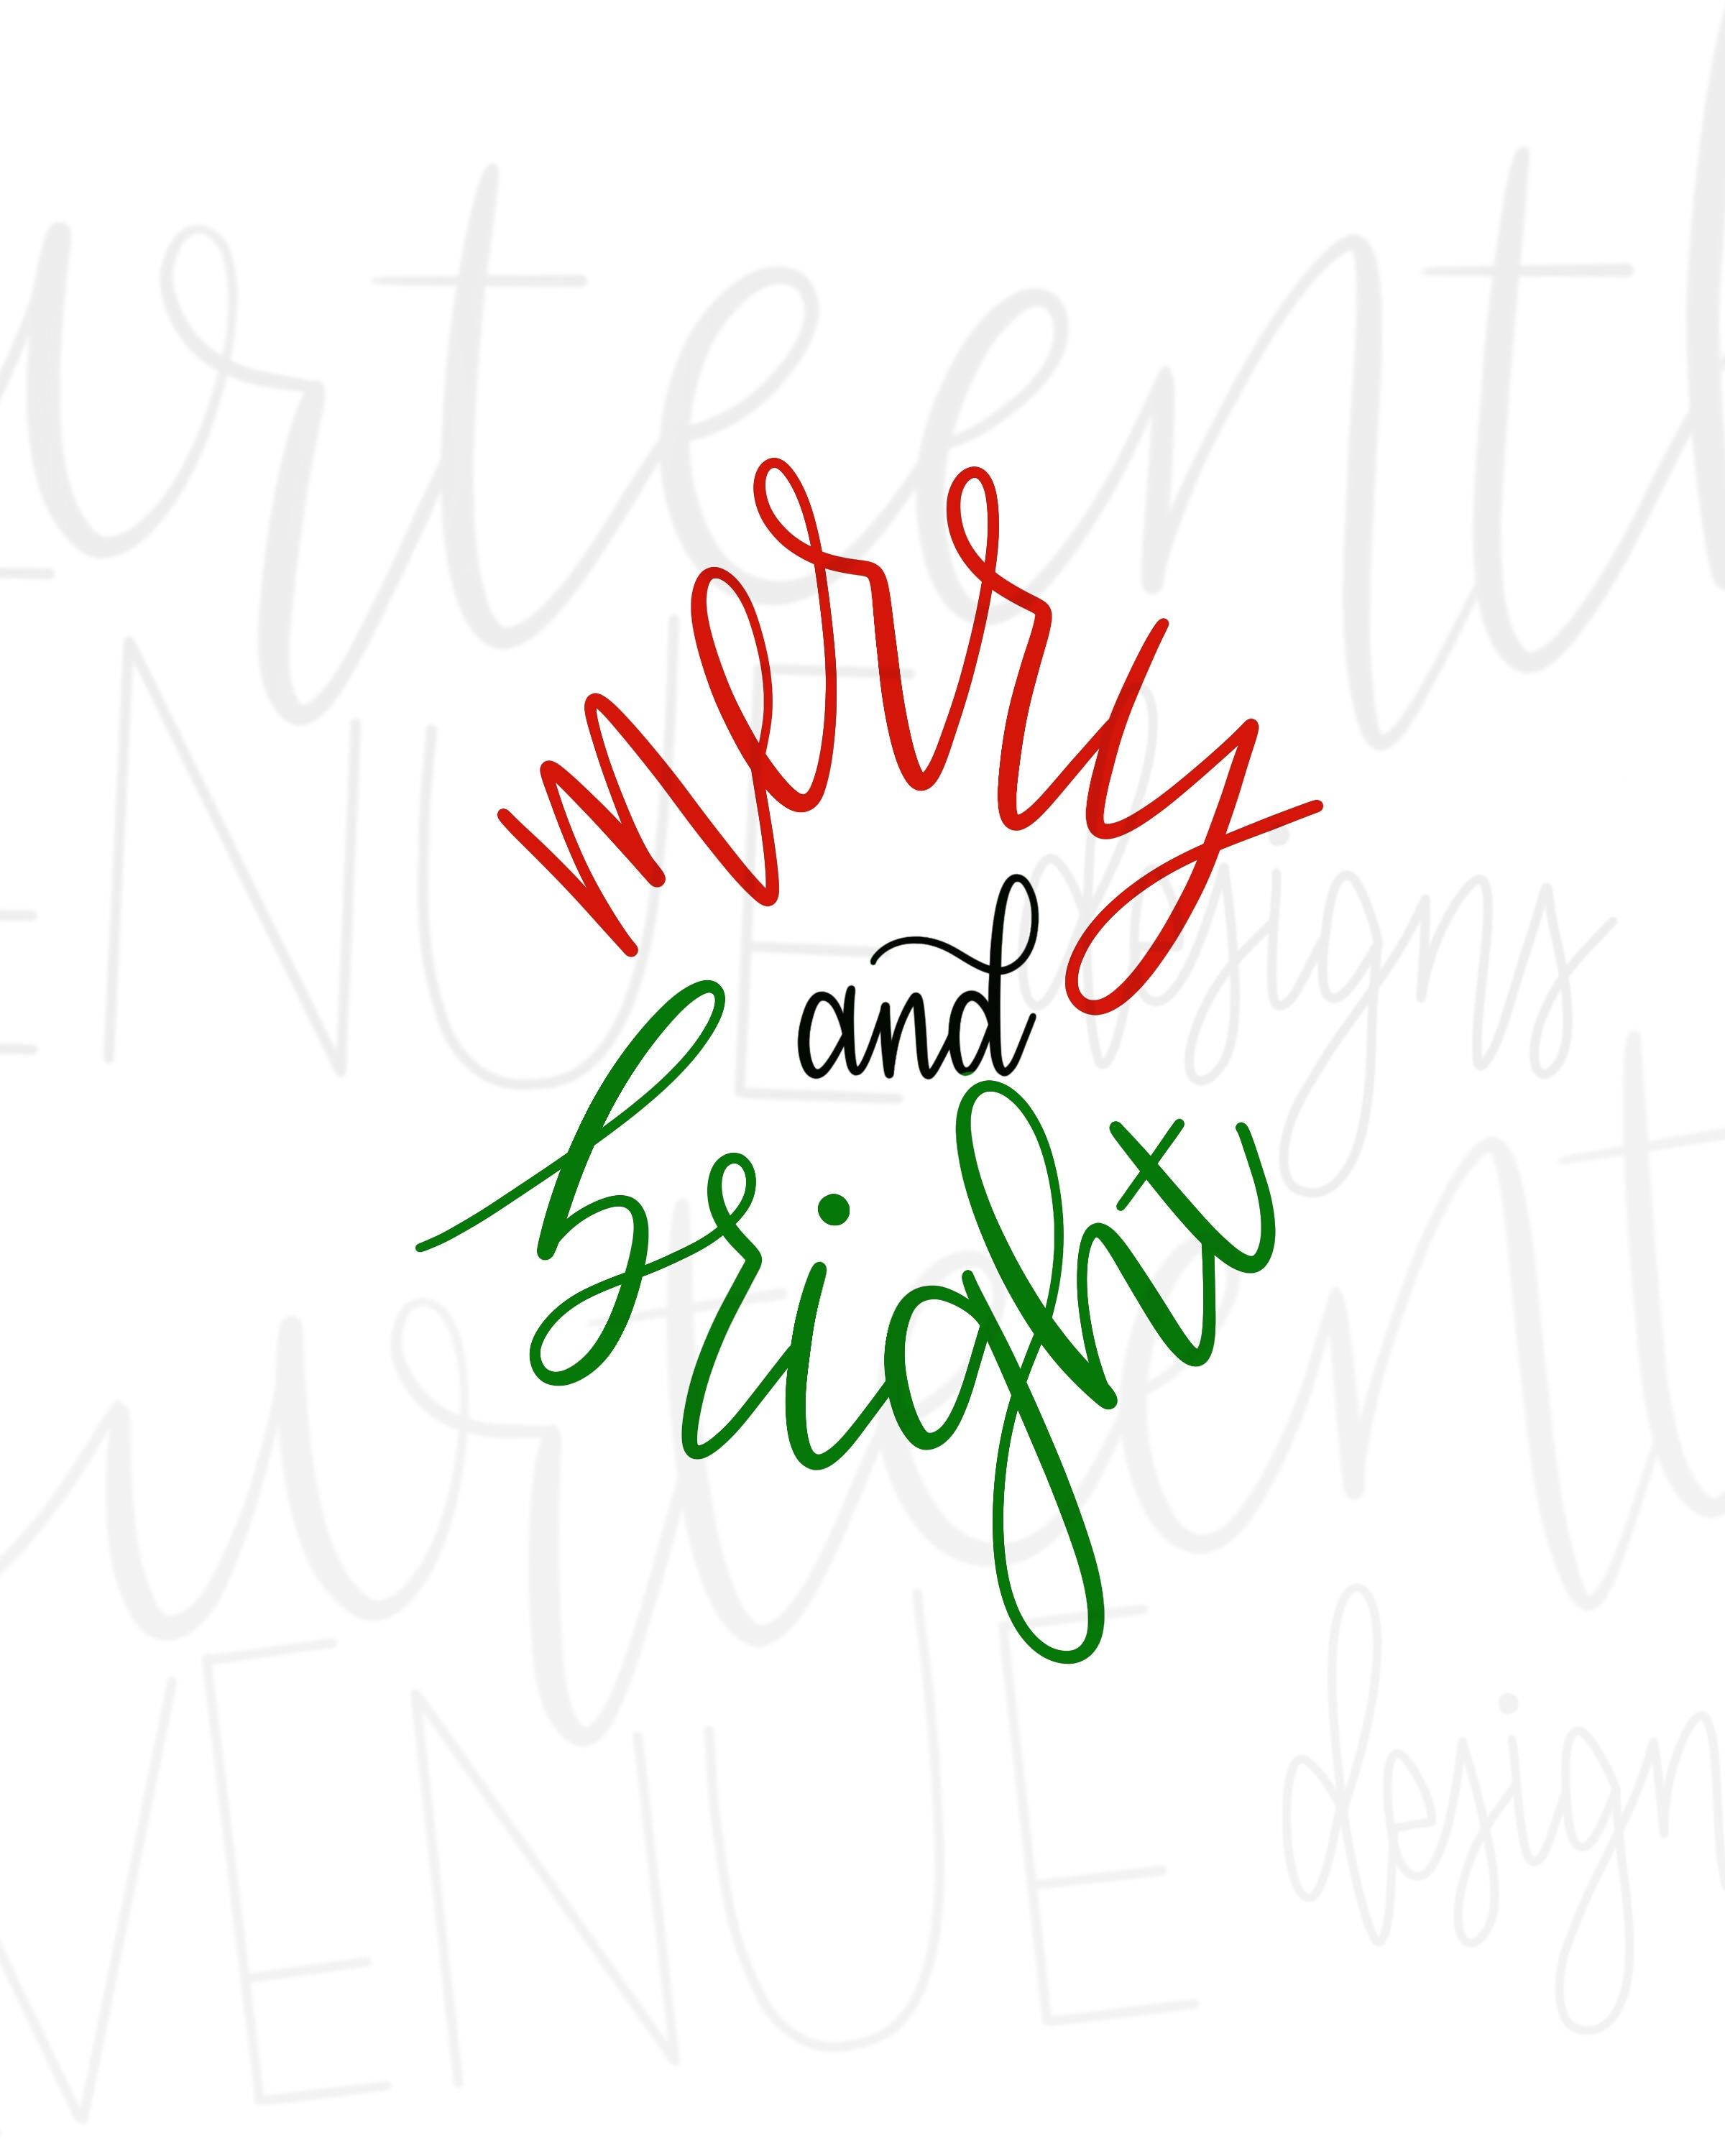 Merry And Bright Svg Christmas Svg Png Dxf Clip Art Etsy Christmas Svg Merry And Bright Clip Art